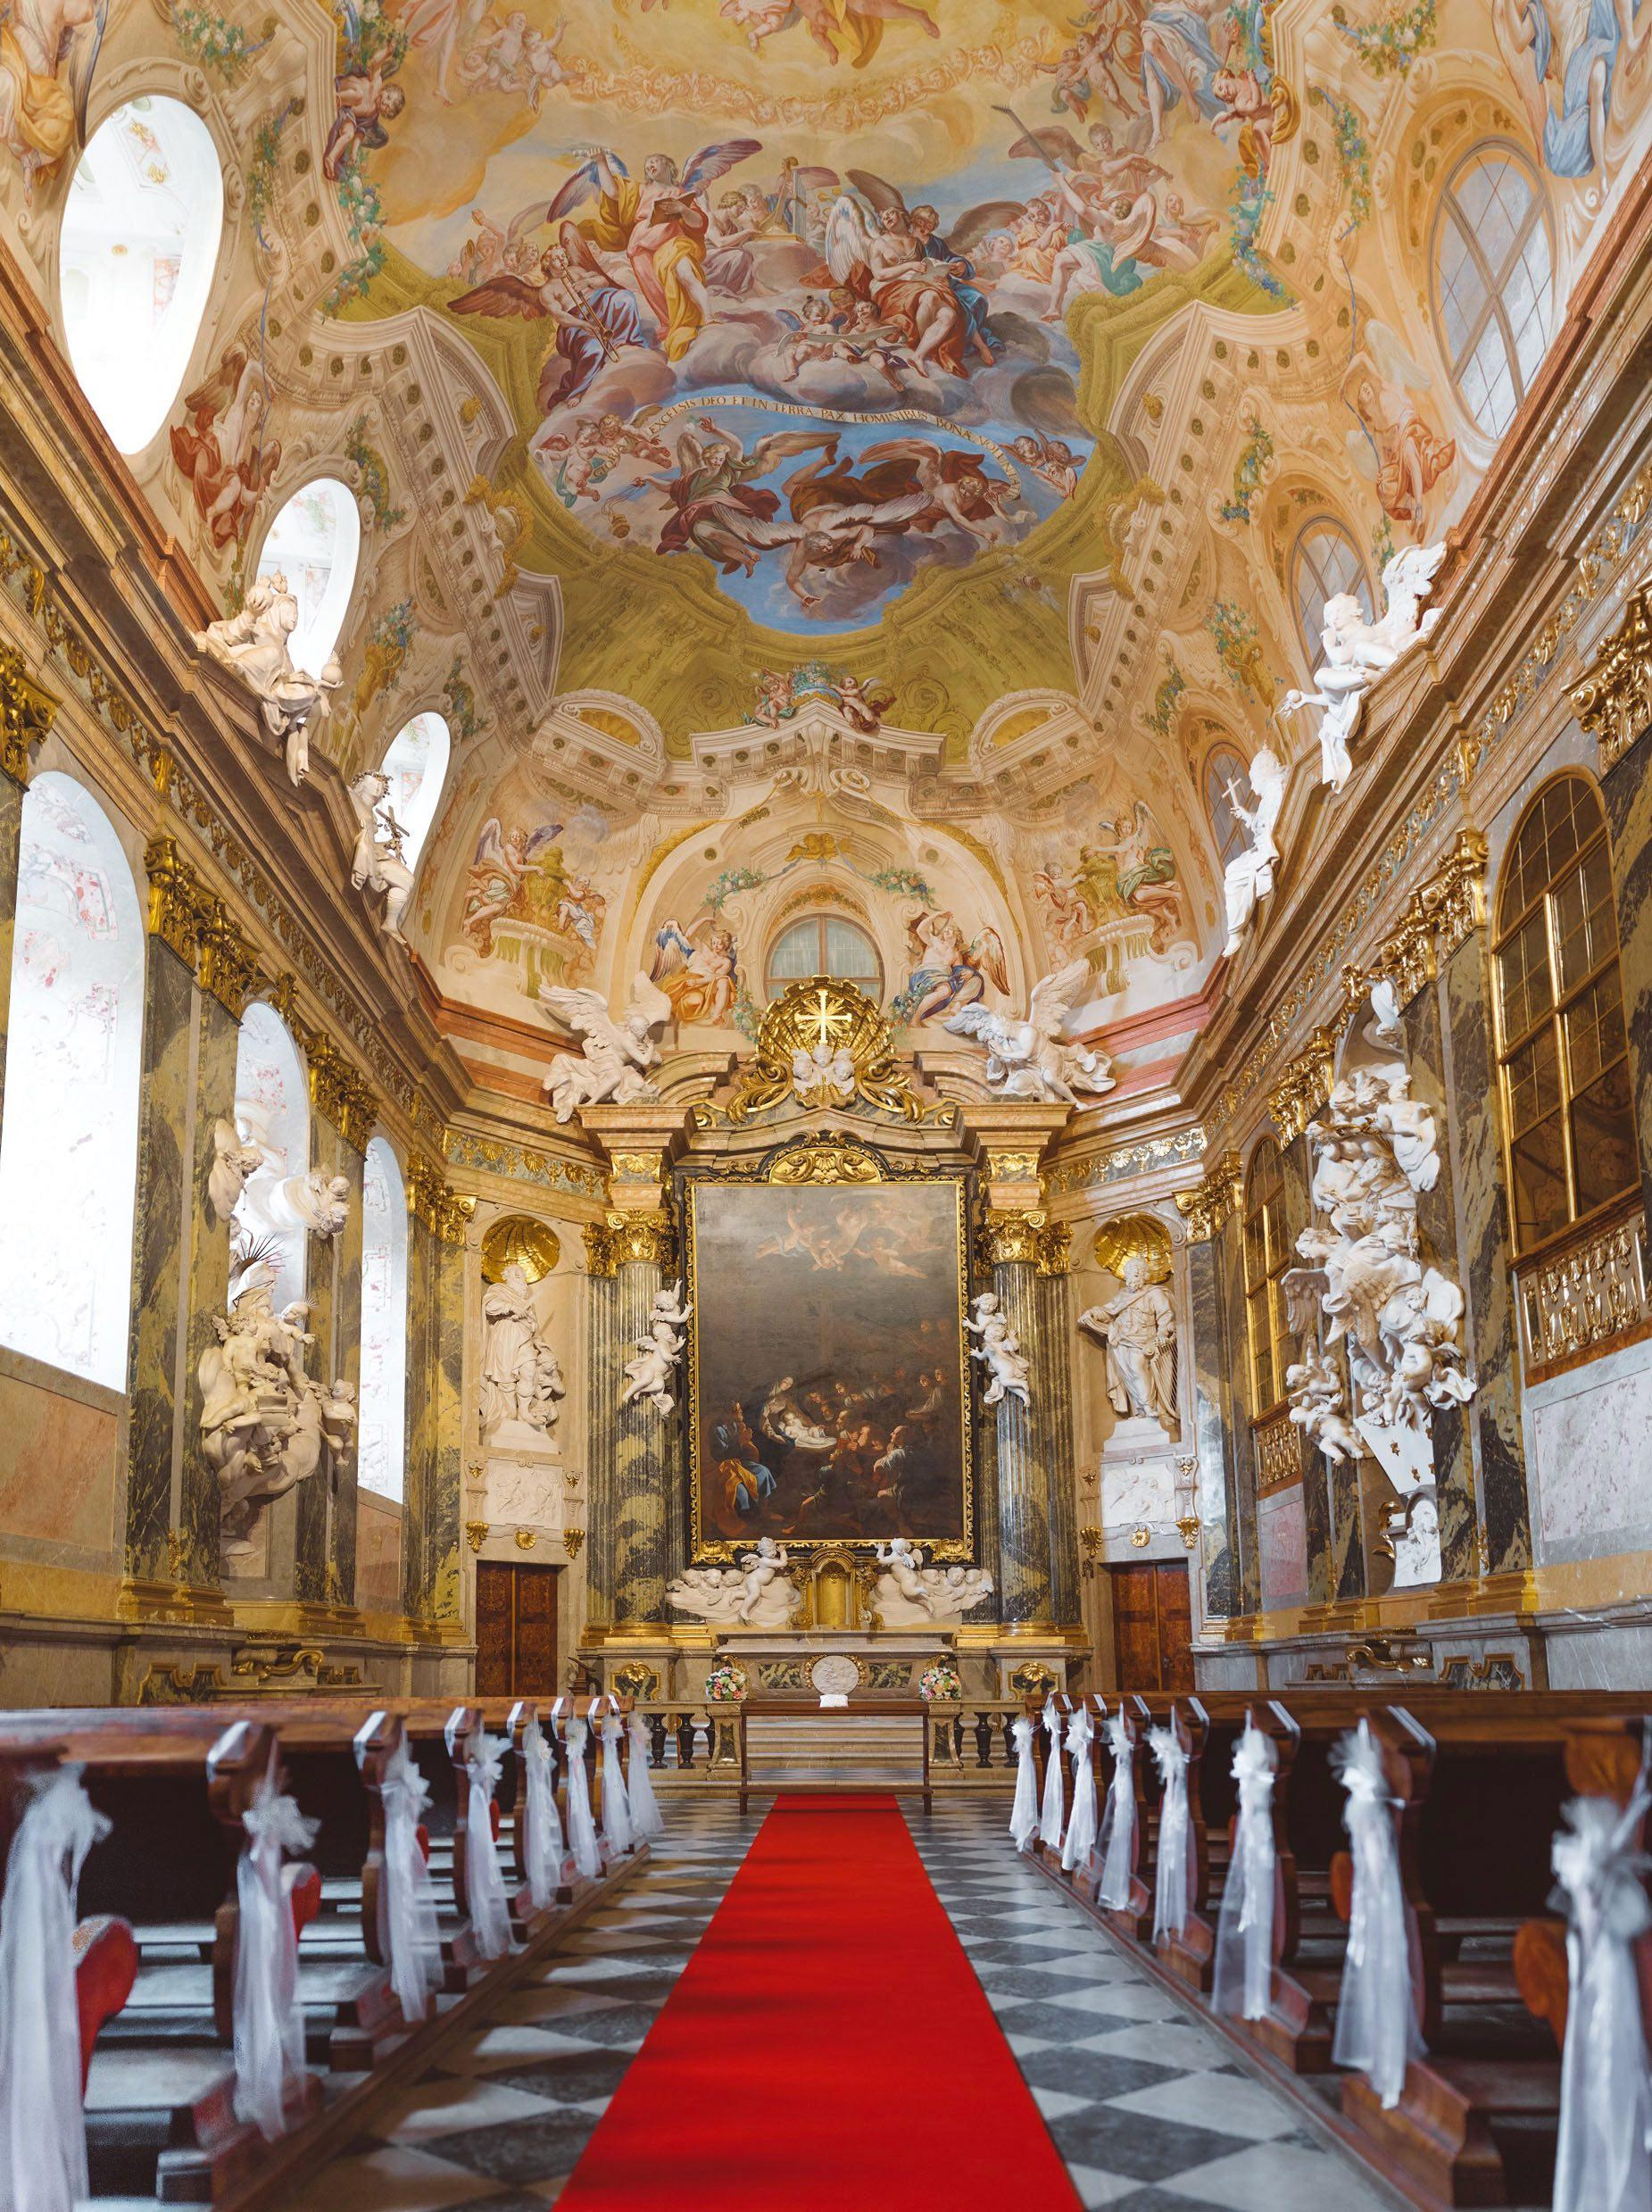 Valtice's unique, exquisitely decorated and well-preserved Baroque chapel from 1730 provides a splendid space for wedding ceremonies, both civil and religious. – © Jiří Wasserbauer